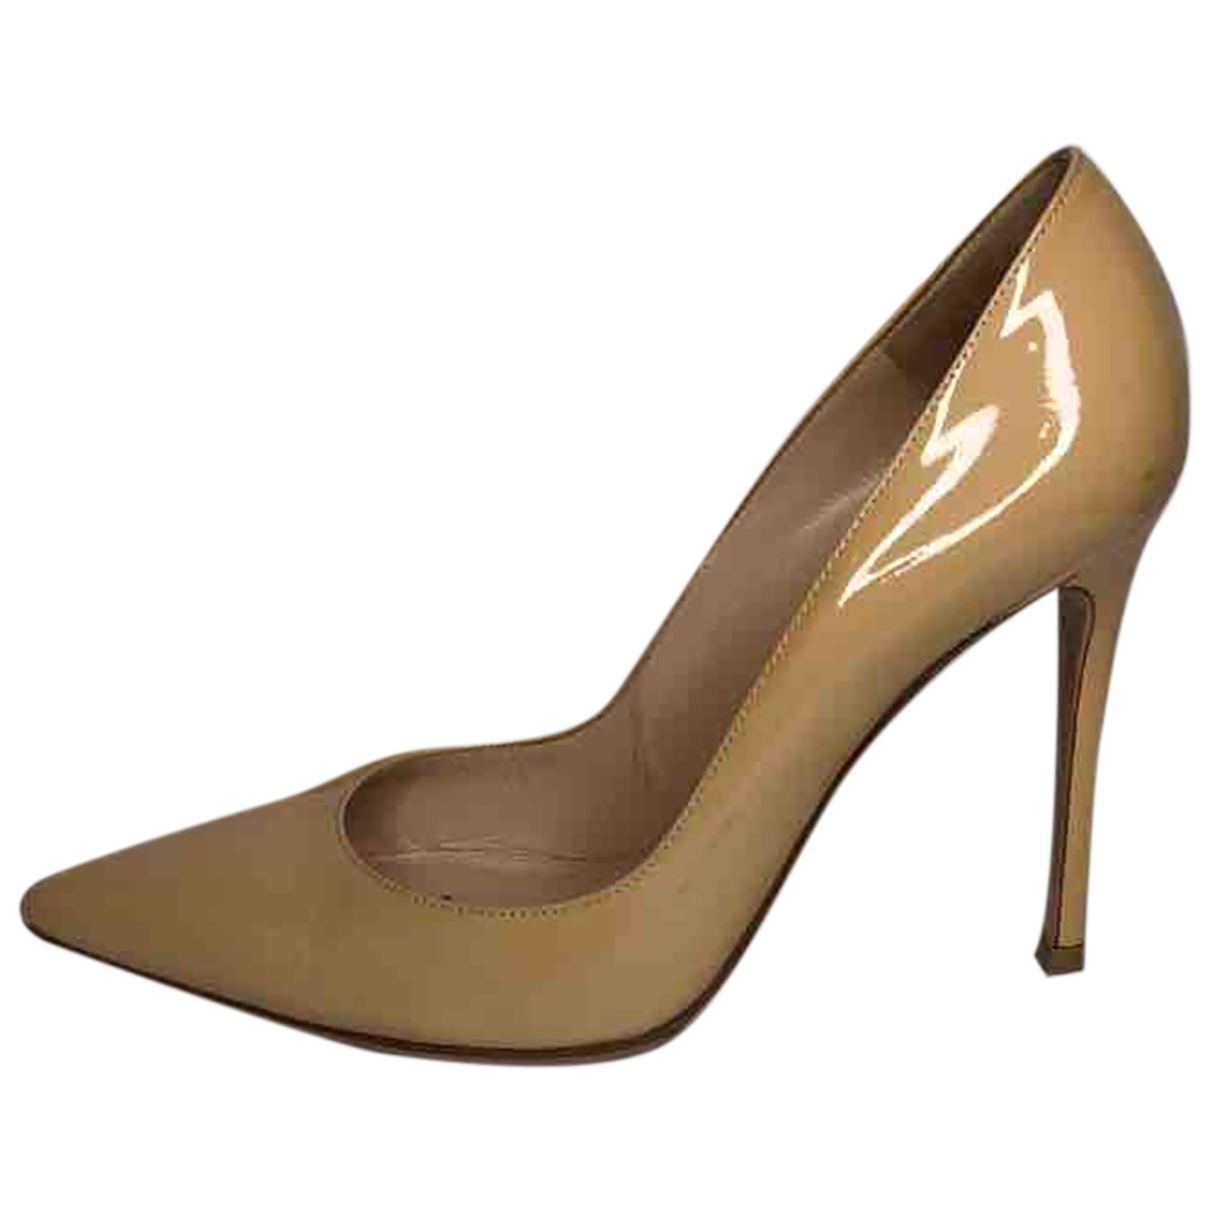 Gianvito Rossi \N Beige Patent leather Heels for Women 38.5 EU